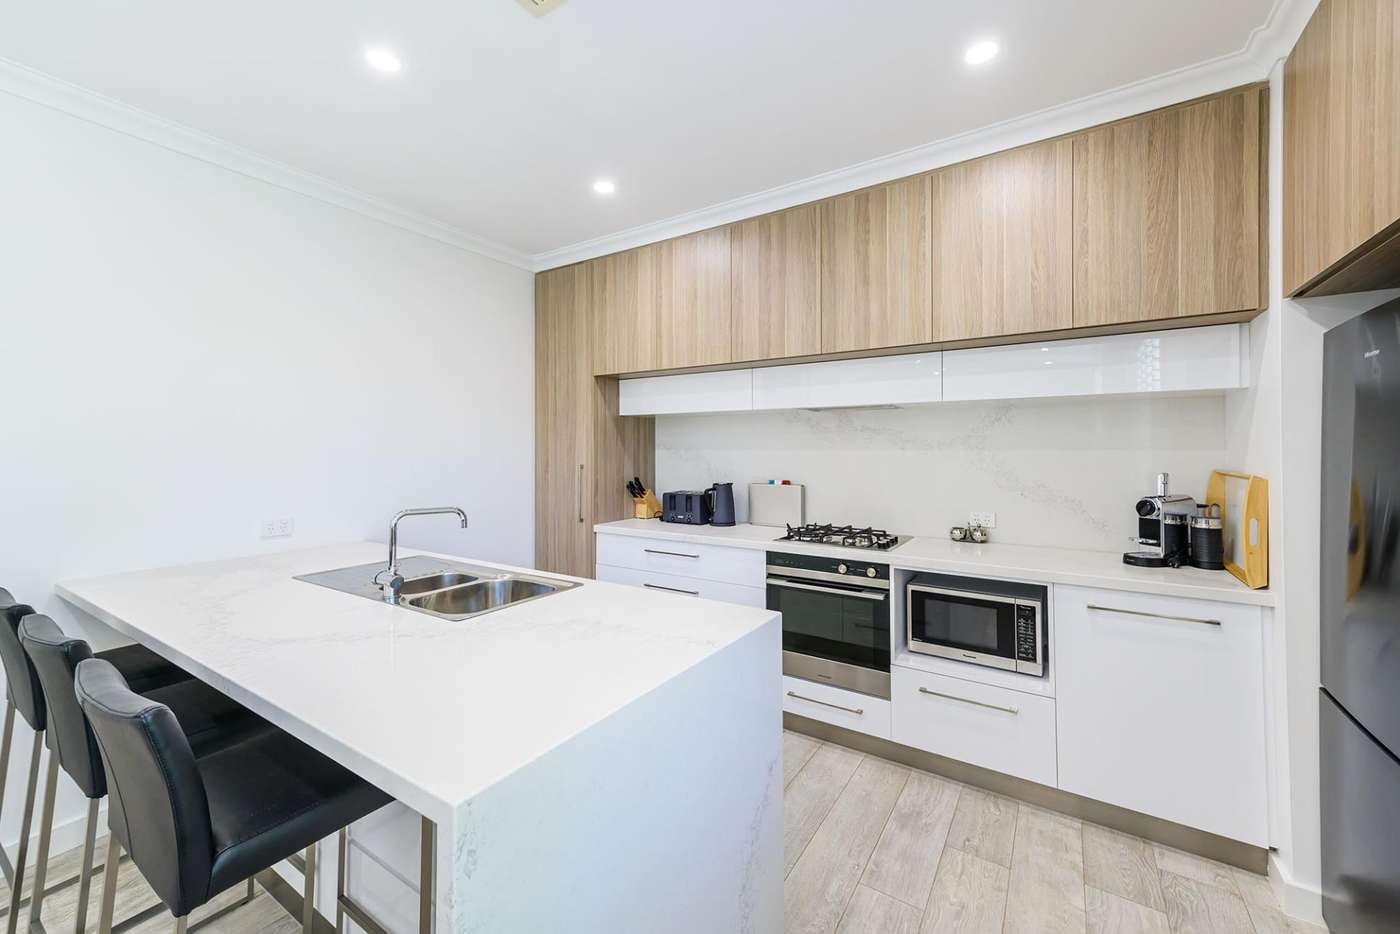 Main view of Homely apartment listing, 1/132 Matlock Street, Mount Hawthorn WA 6016